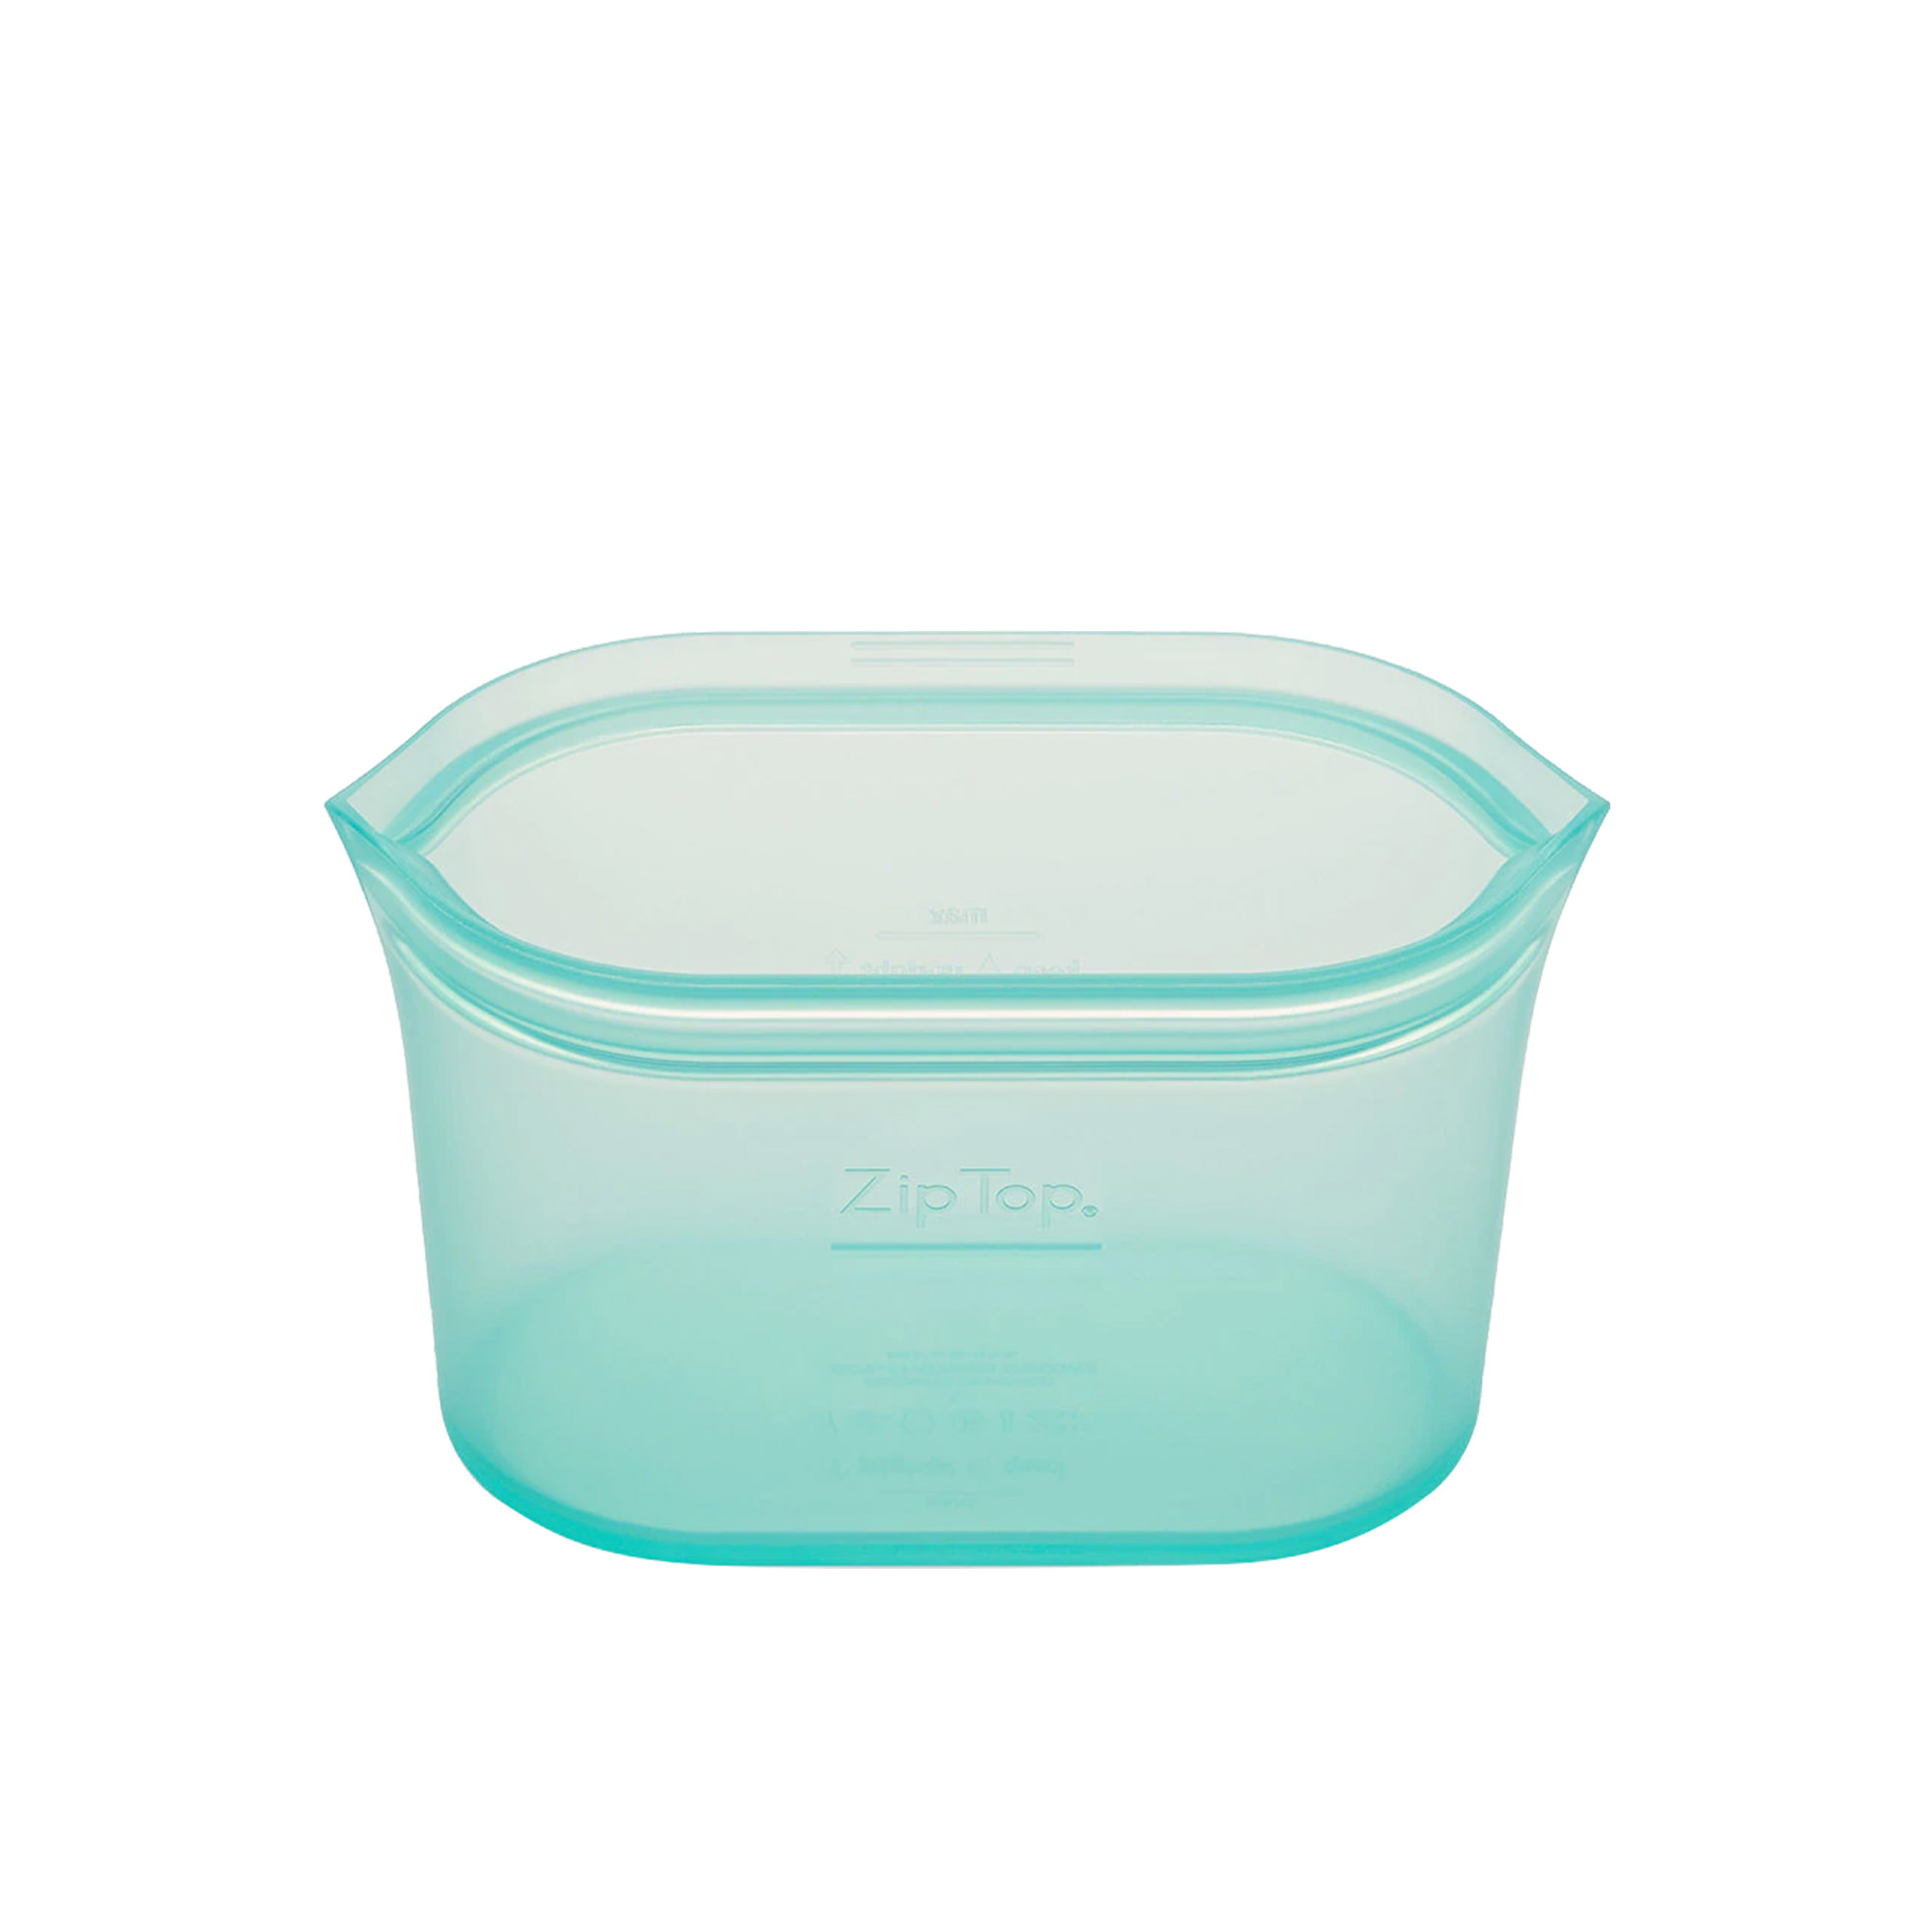 Zip Top Platinum Silicone Small Dish Container 473ml Teal